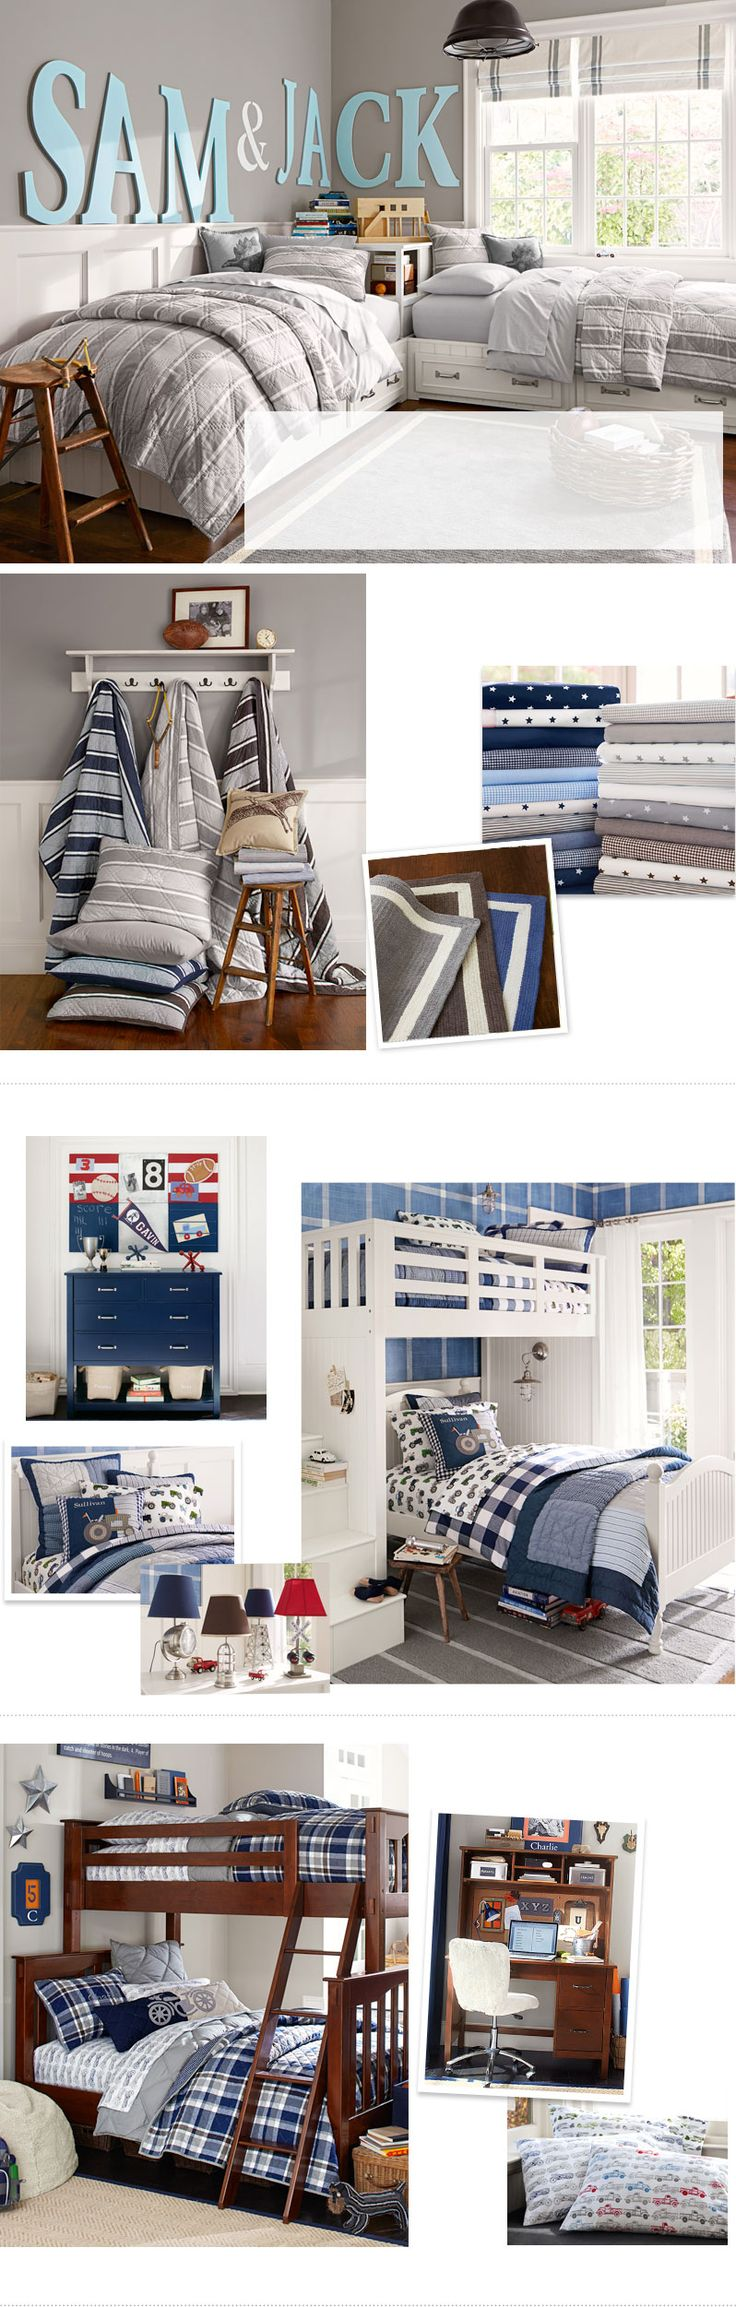 Frugal tips for organizing kids rooms thrifty nw mom fresh bedrooms - Boys Room Ideas Boys Room Decorating Ideas Pottery Barn Kids Bed Set